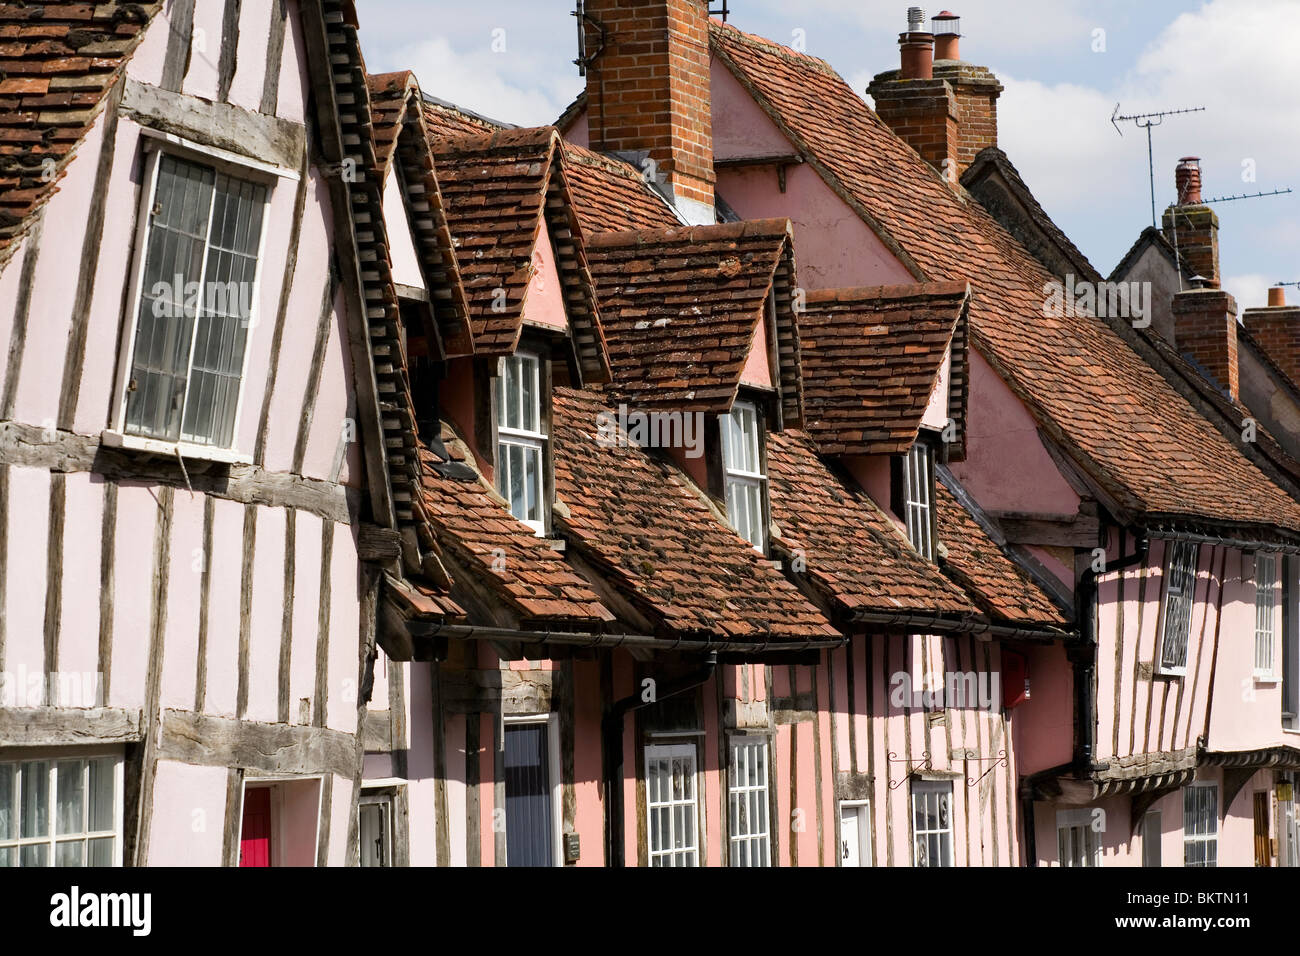 Roof details of a row of medieval houses in Lavenham, Suffolk. - Stock Image